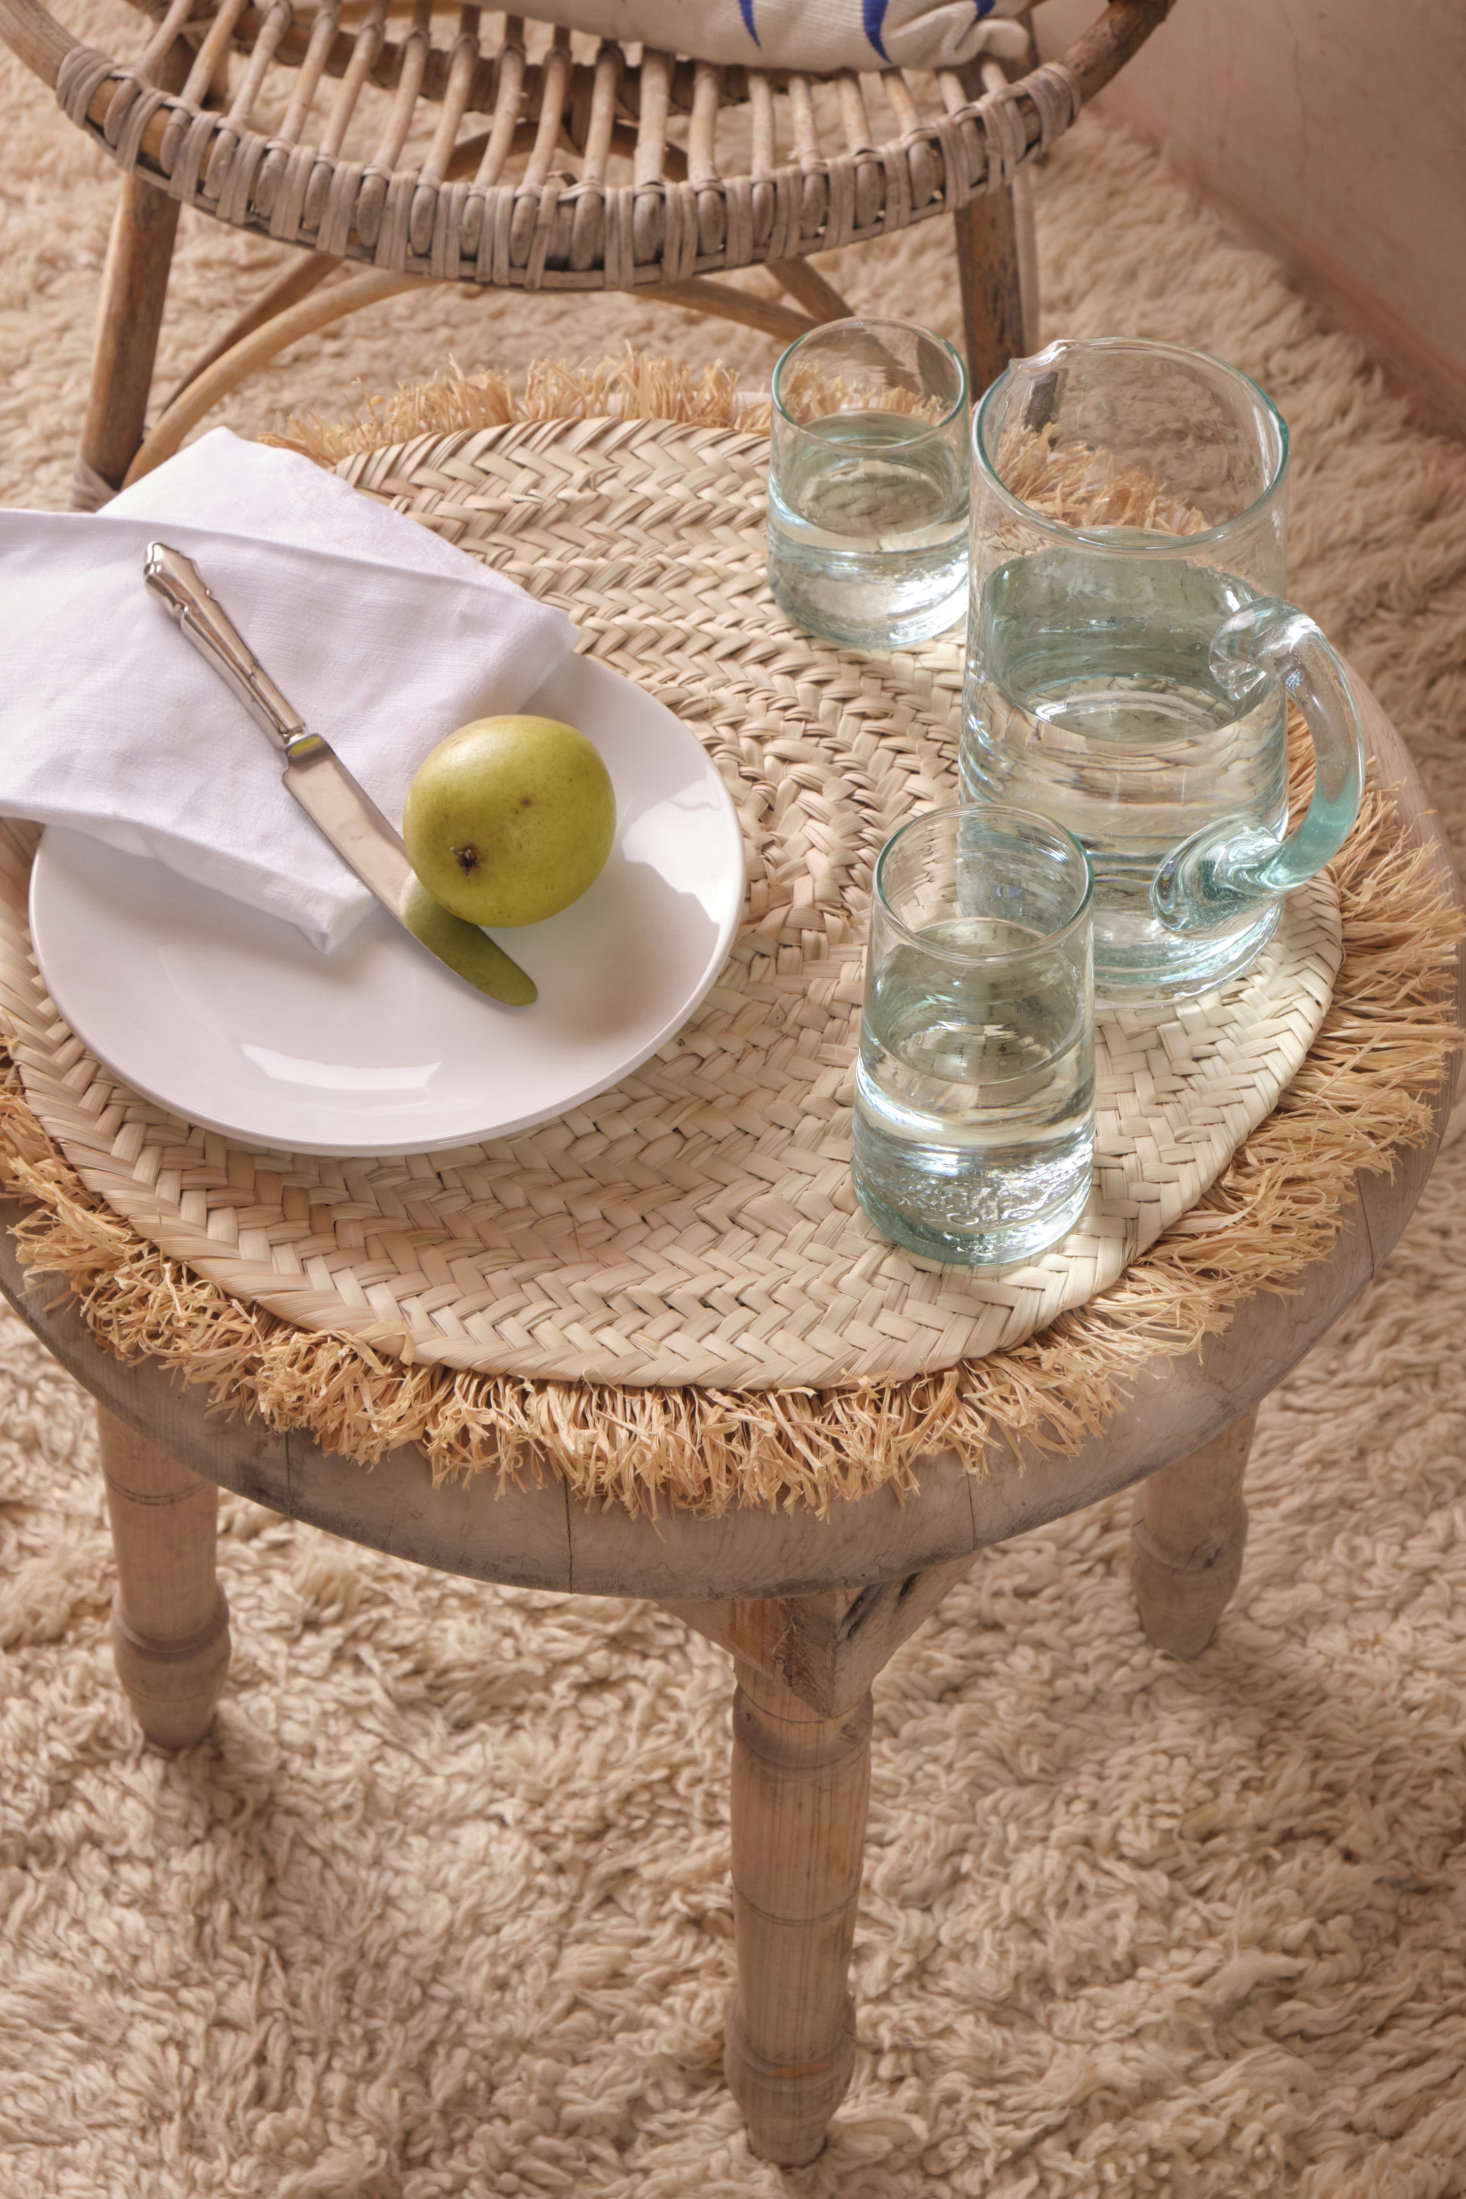 A selection of Revival's new globally made tablewares: the Handwoven Palm Placemat ($59), handwoven in Morocco from sun-dried palm leaf with a jaunty raffia fringe, and a recycled glass Moroccan Pitcher ($39) with a sturdy handle for easy pouring. Below is a one-of-a-kind vintage Moroccan hand-knotted rug; for similar finds, head here.